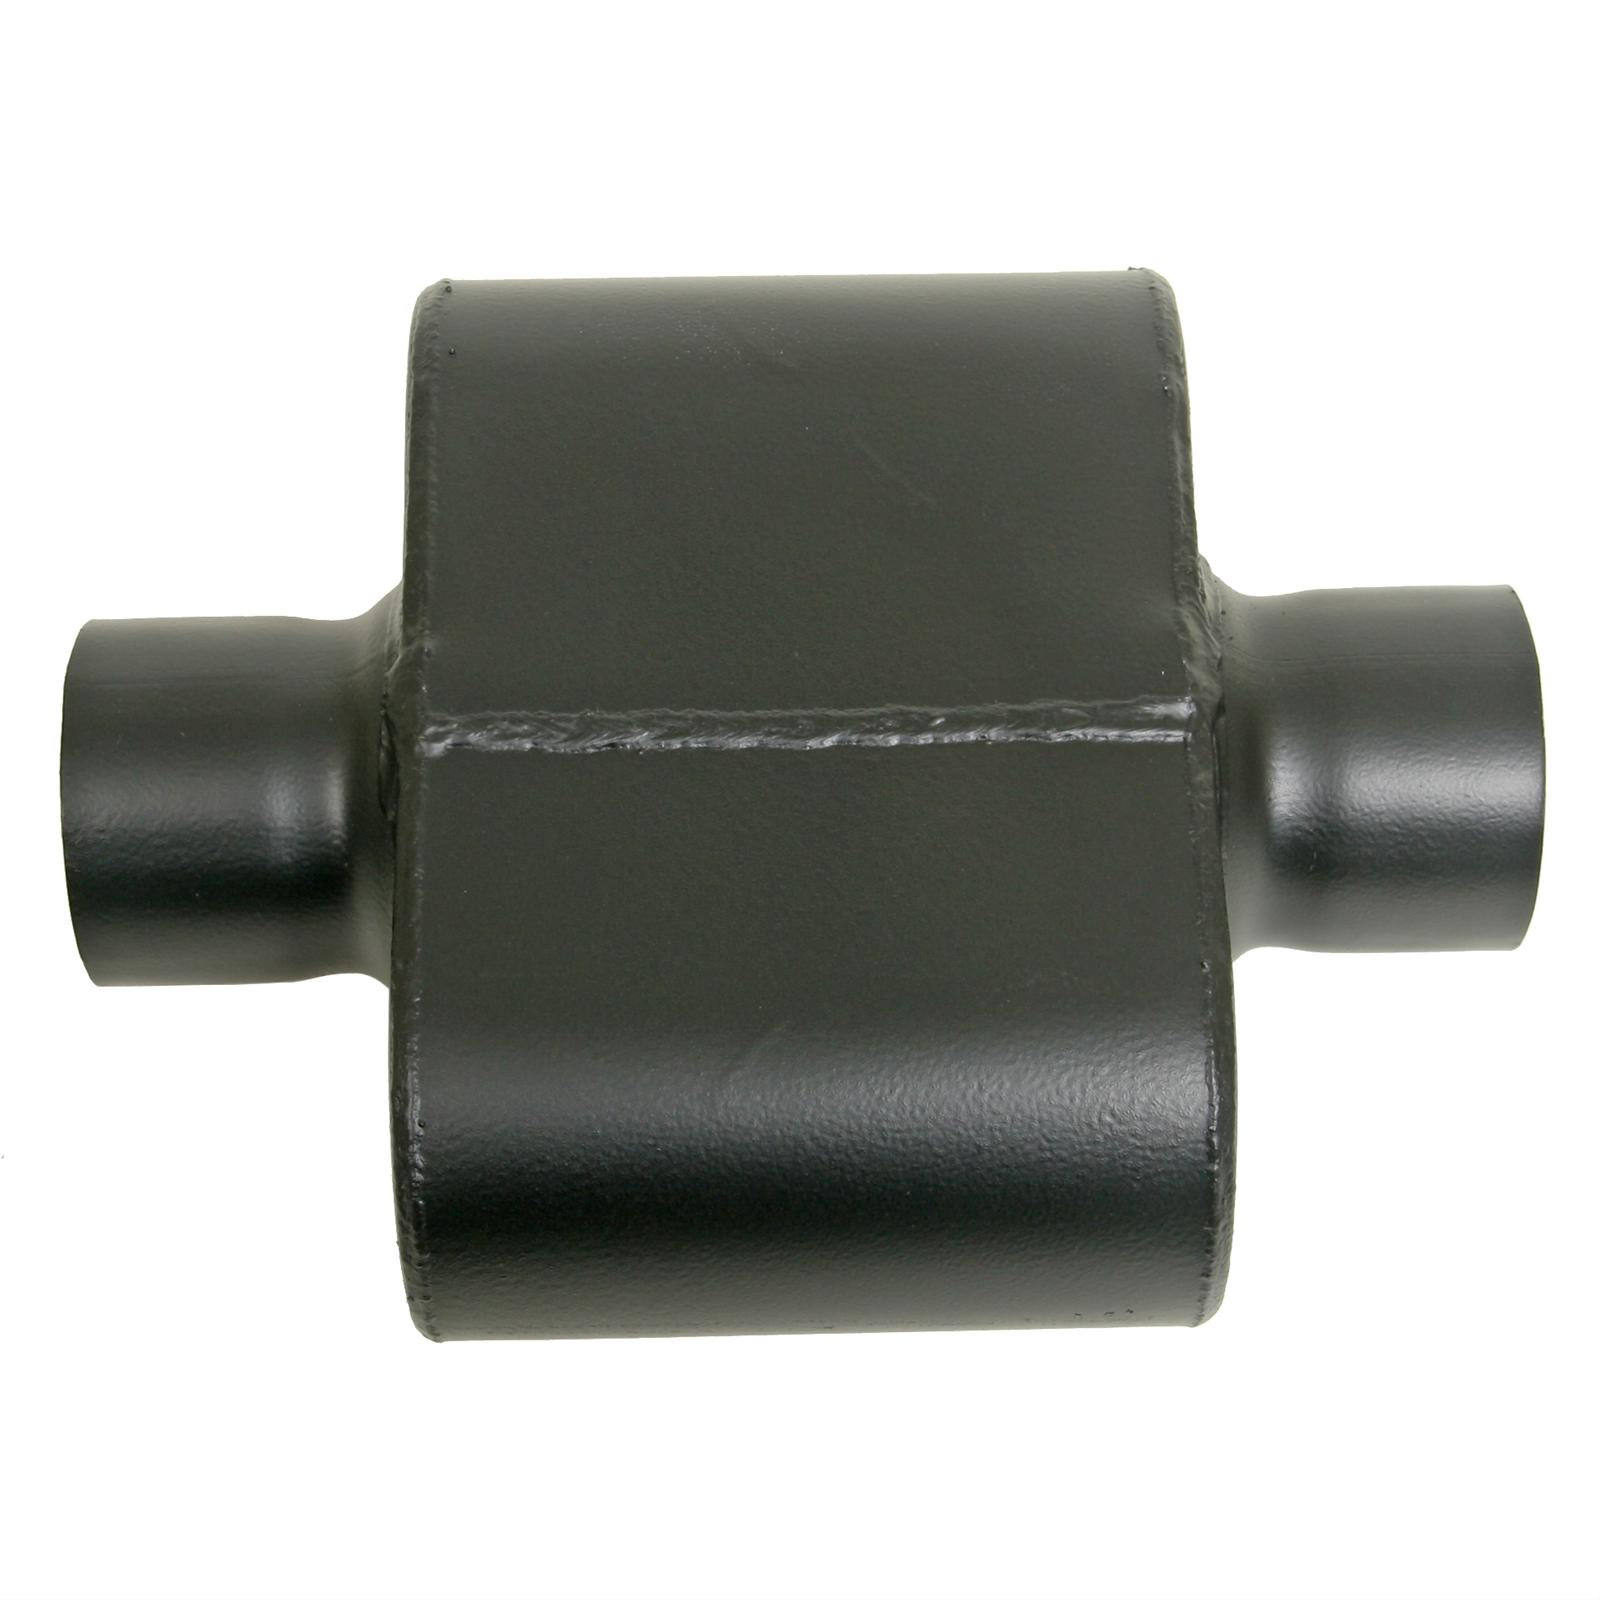 Single chamber performance race muffler